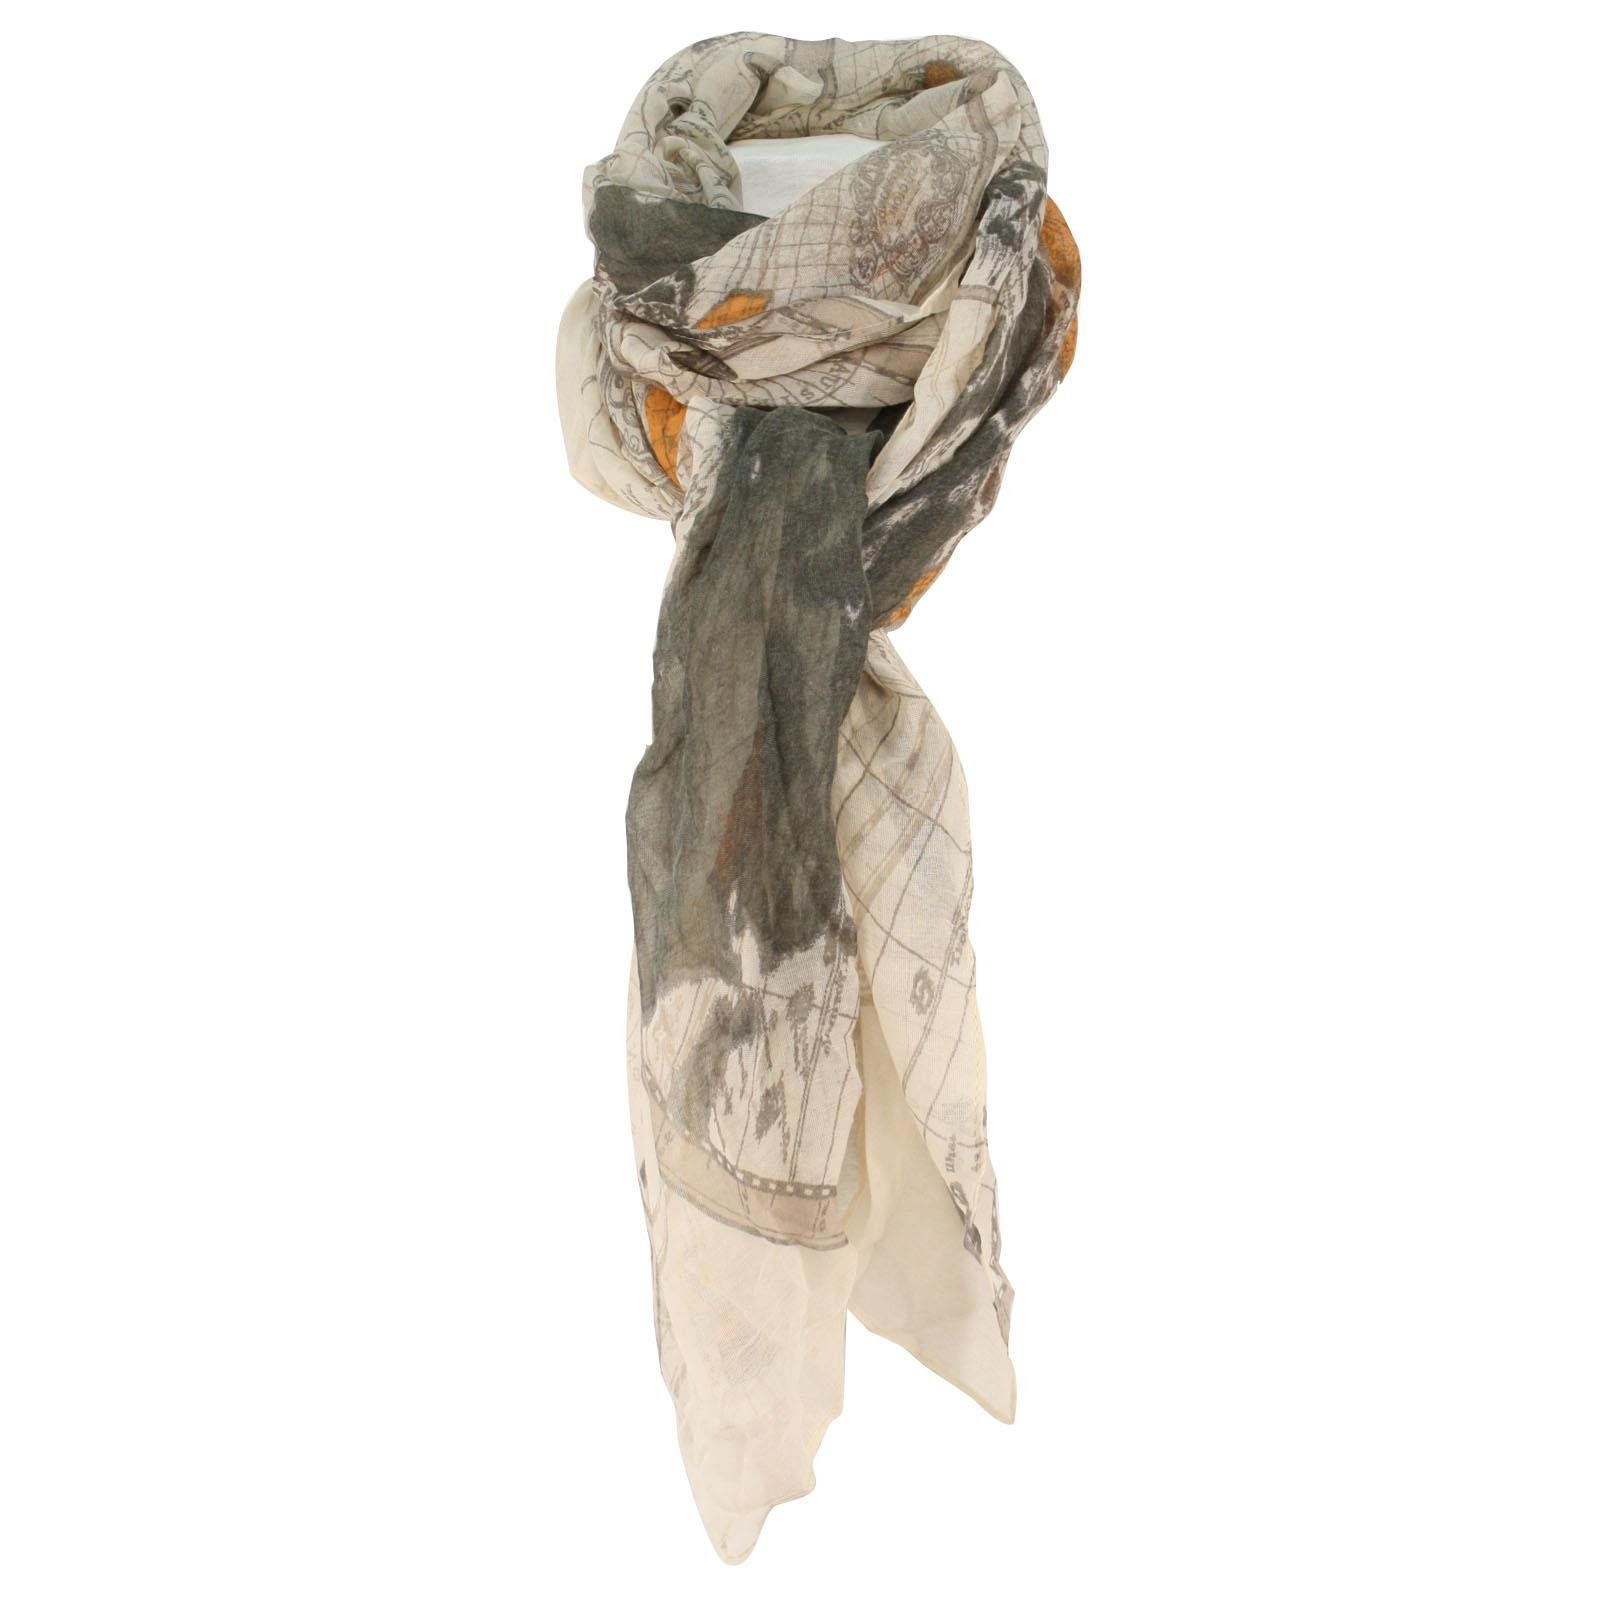 Summer soft light world atlas compass map scarf wrap shawl cover up summer soft light world atlas compass map scarf wrap shawl cover up loop beige at amazon gumiabroncs Image collections